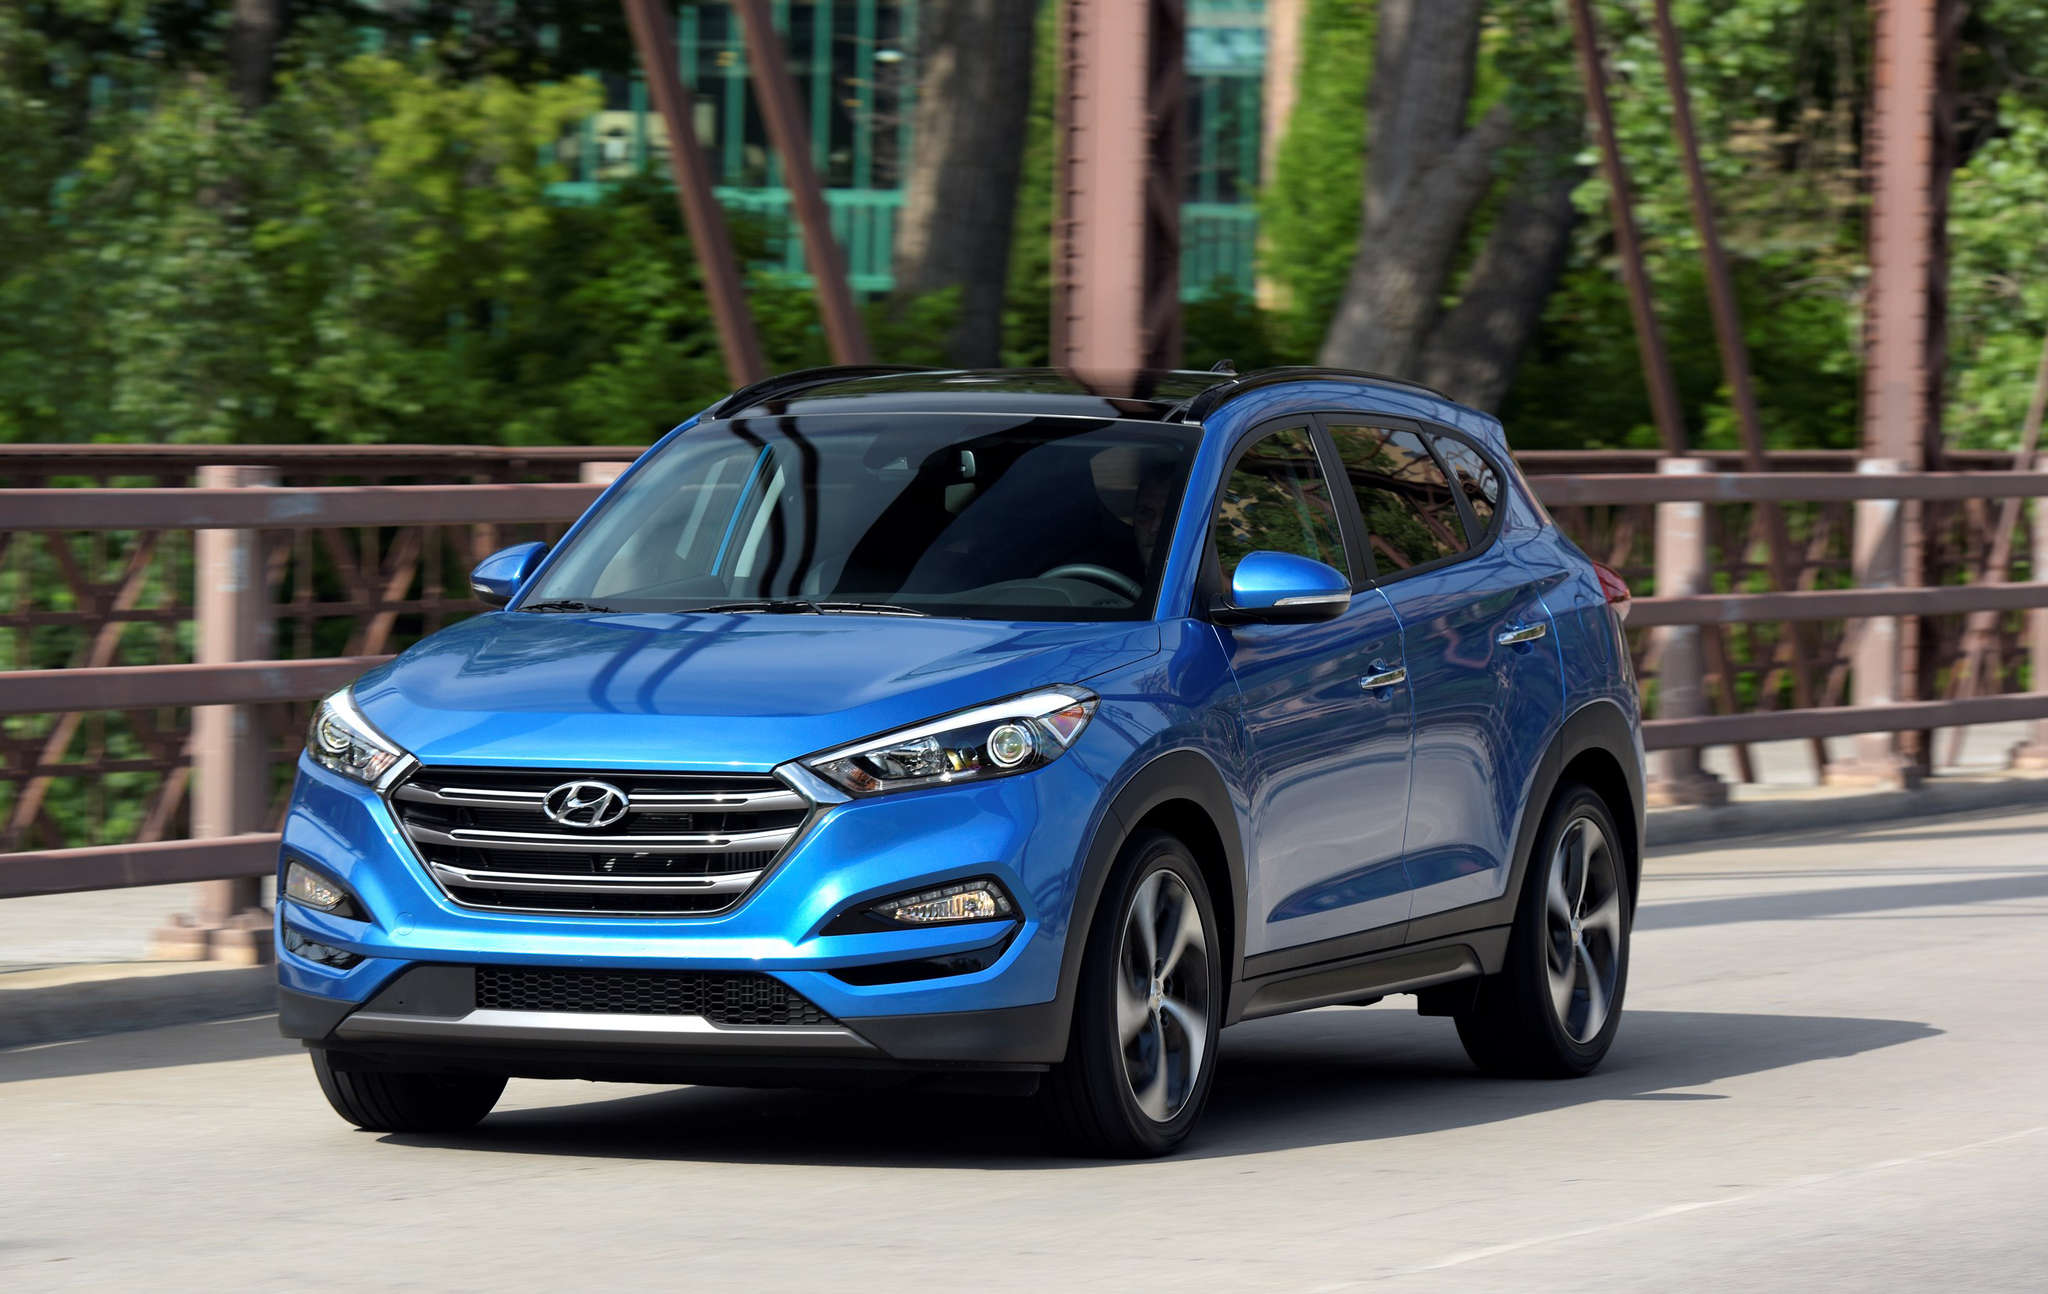 The Hyundai Tucson has undergone a redesign for the 2016 model year.